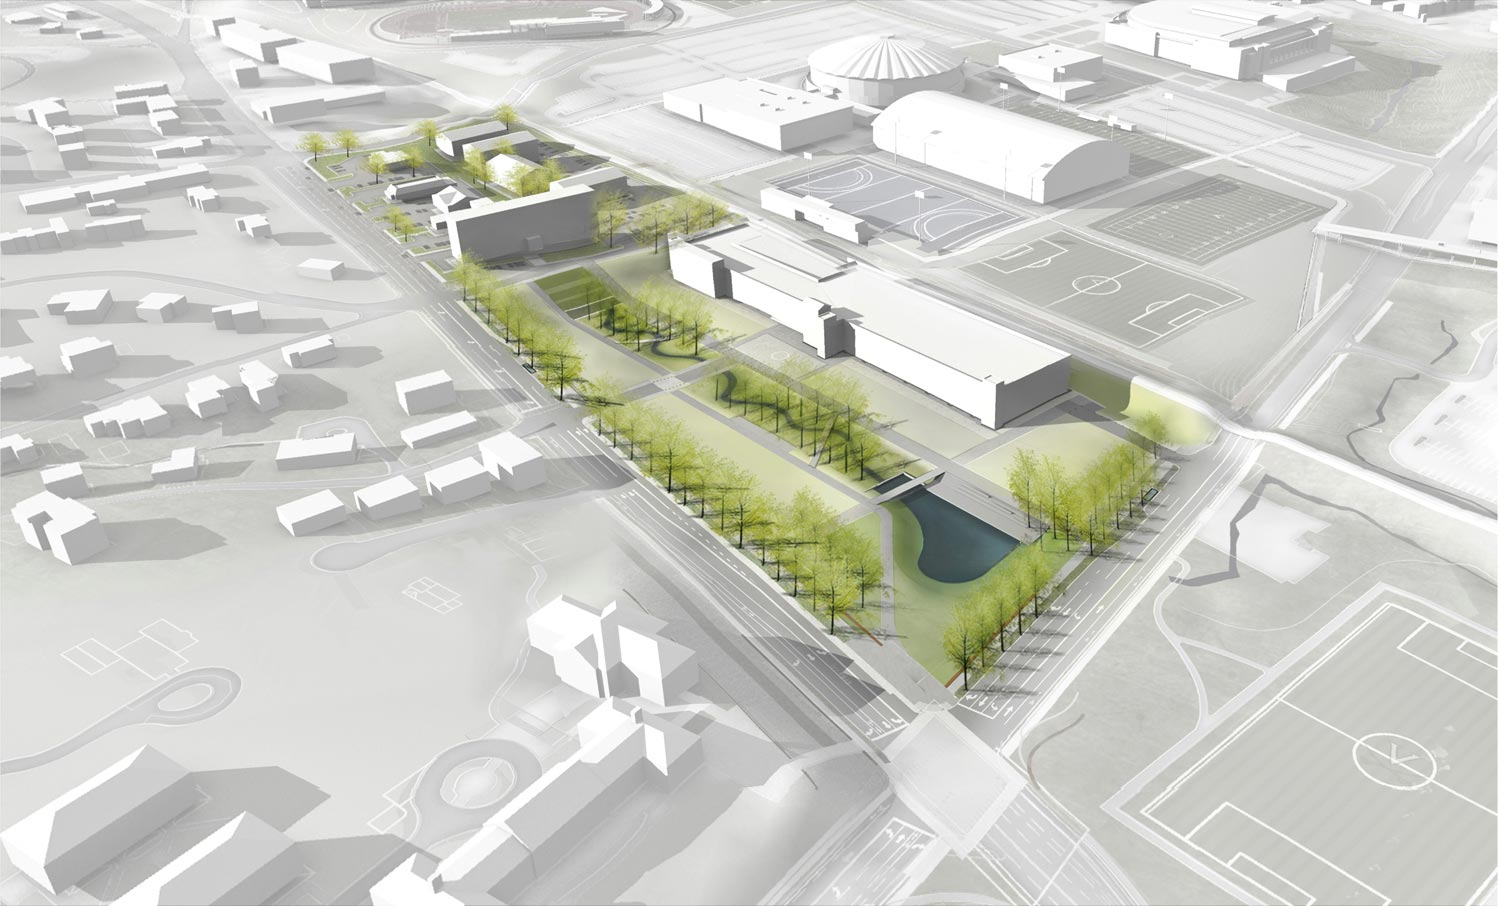 An aerial rendering shows the overall Ivy Corridor redevelopment plan for the area bordered by Emmet Street, the railroad tracks, and Ivy and Copeley roads.